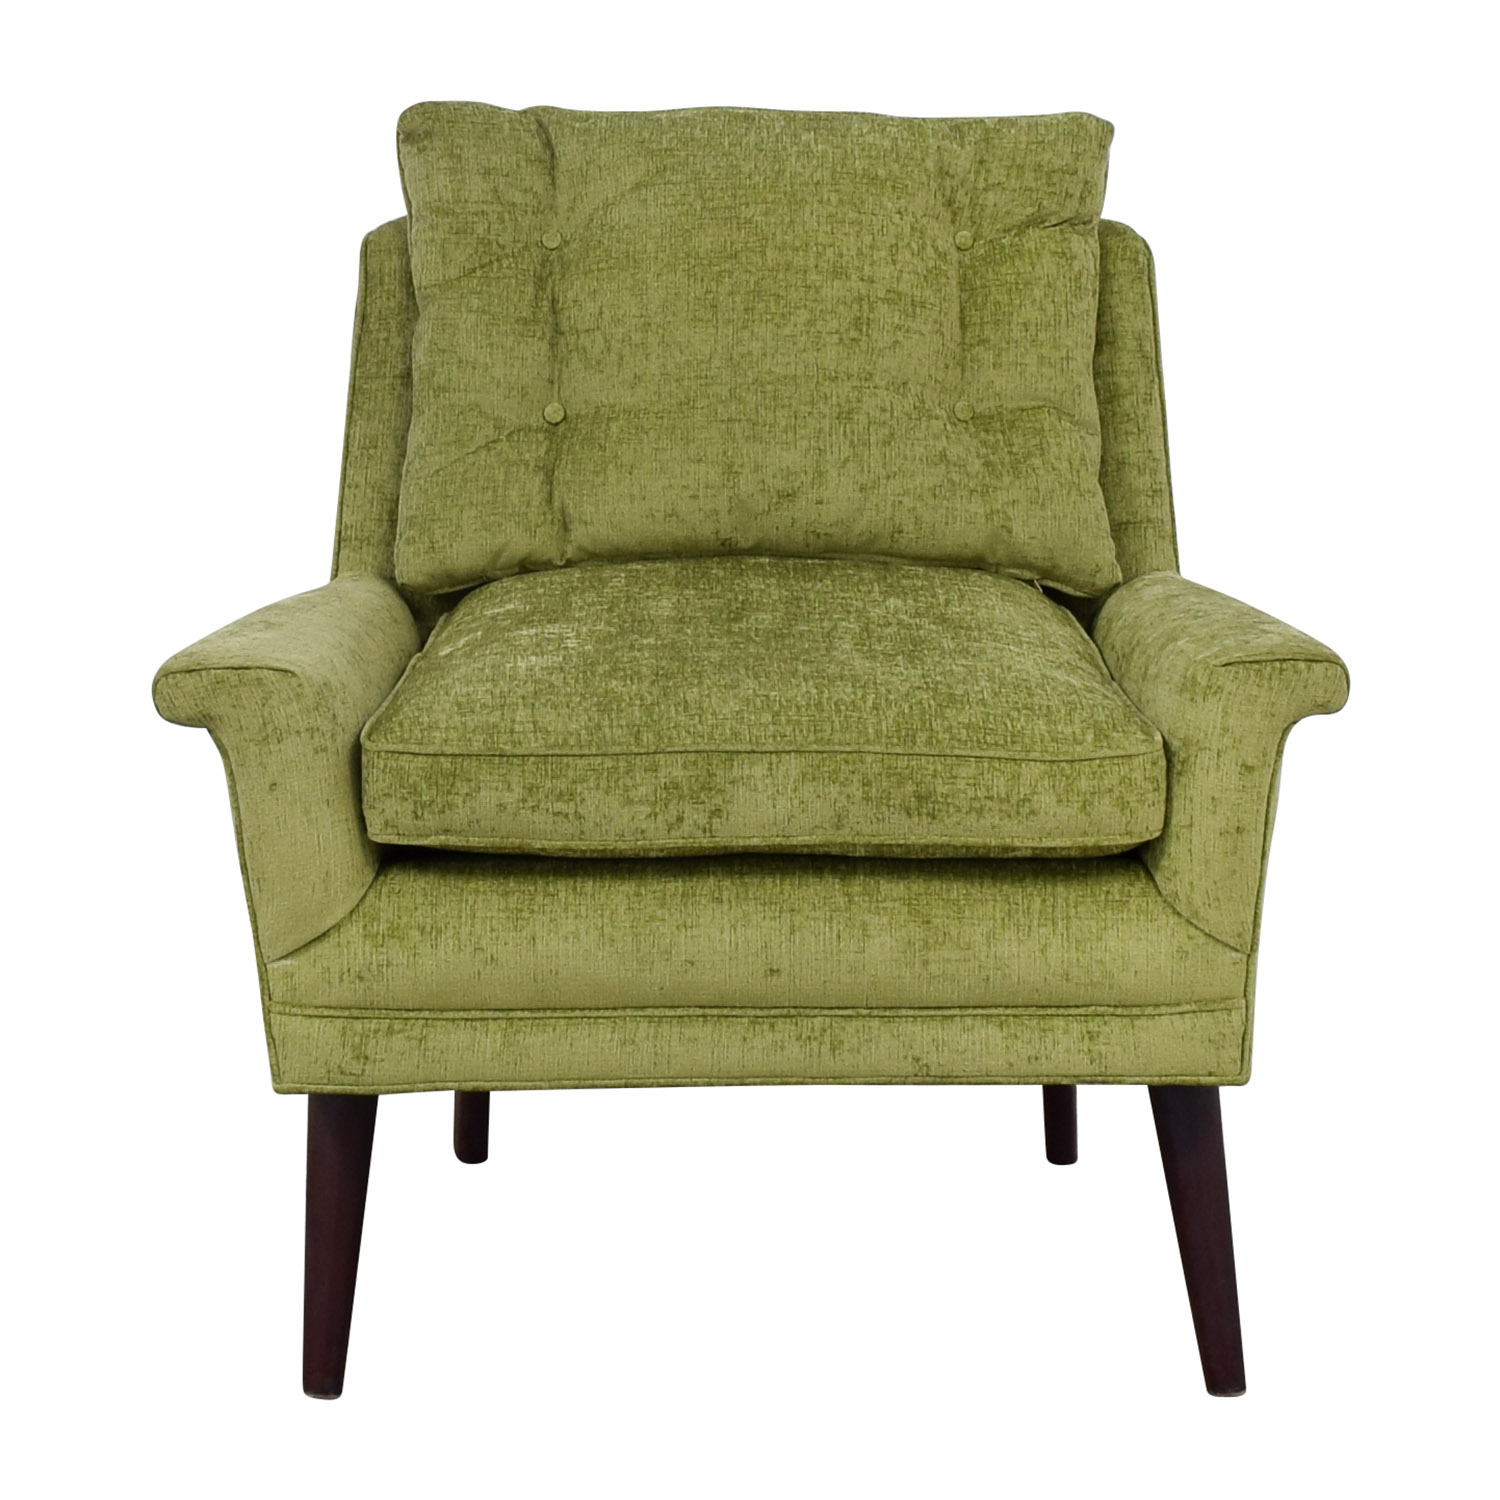 Stonebrook Interiors Stonebrook Interiors Mid Century Club Chair discount